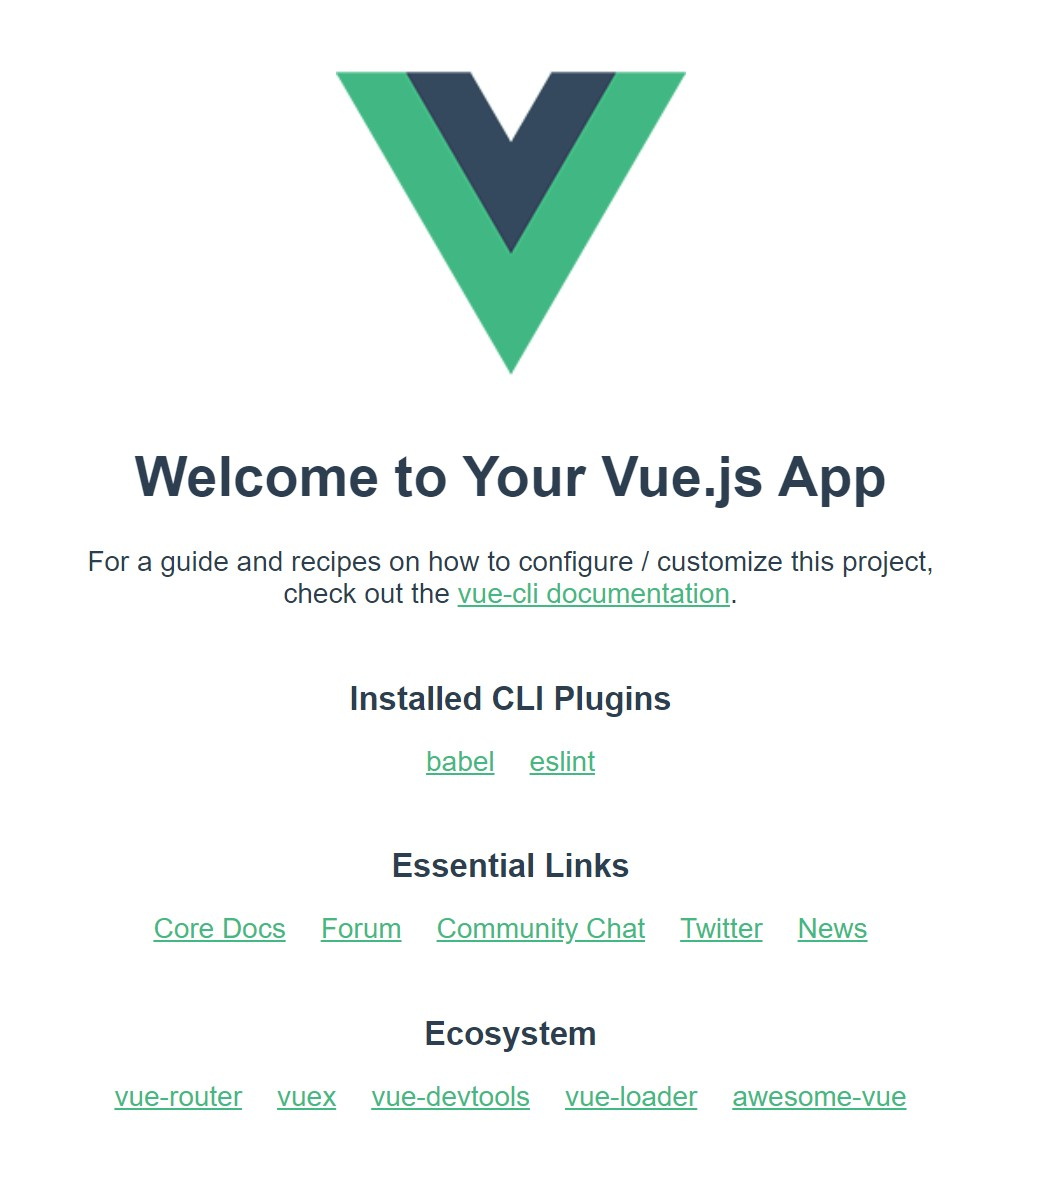 The demo Vue app on our browser localhost